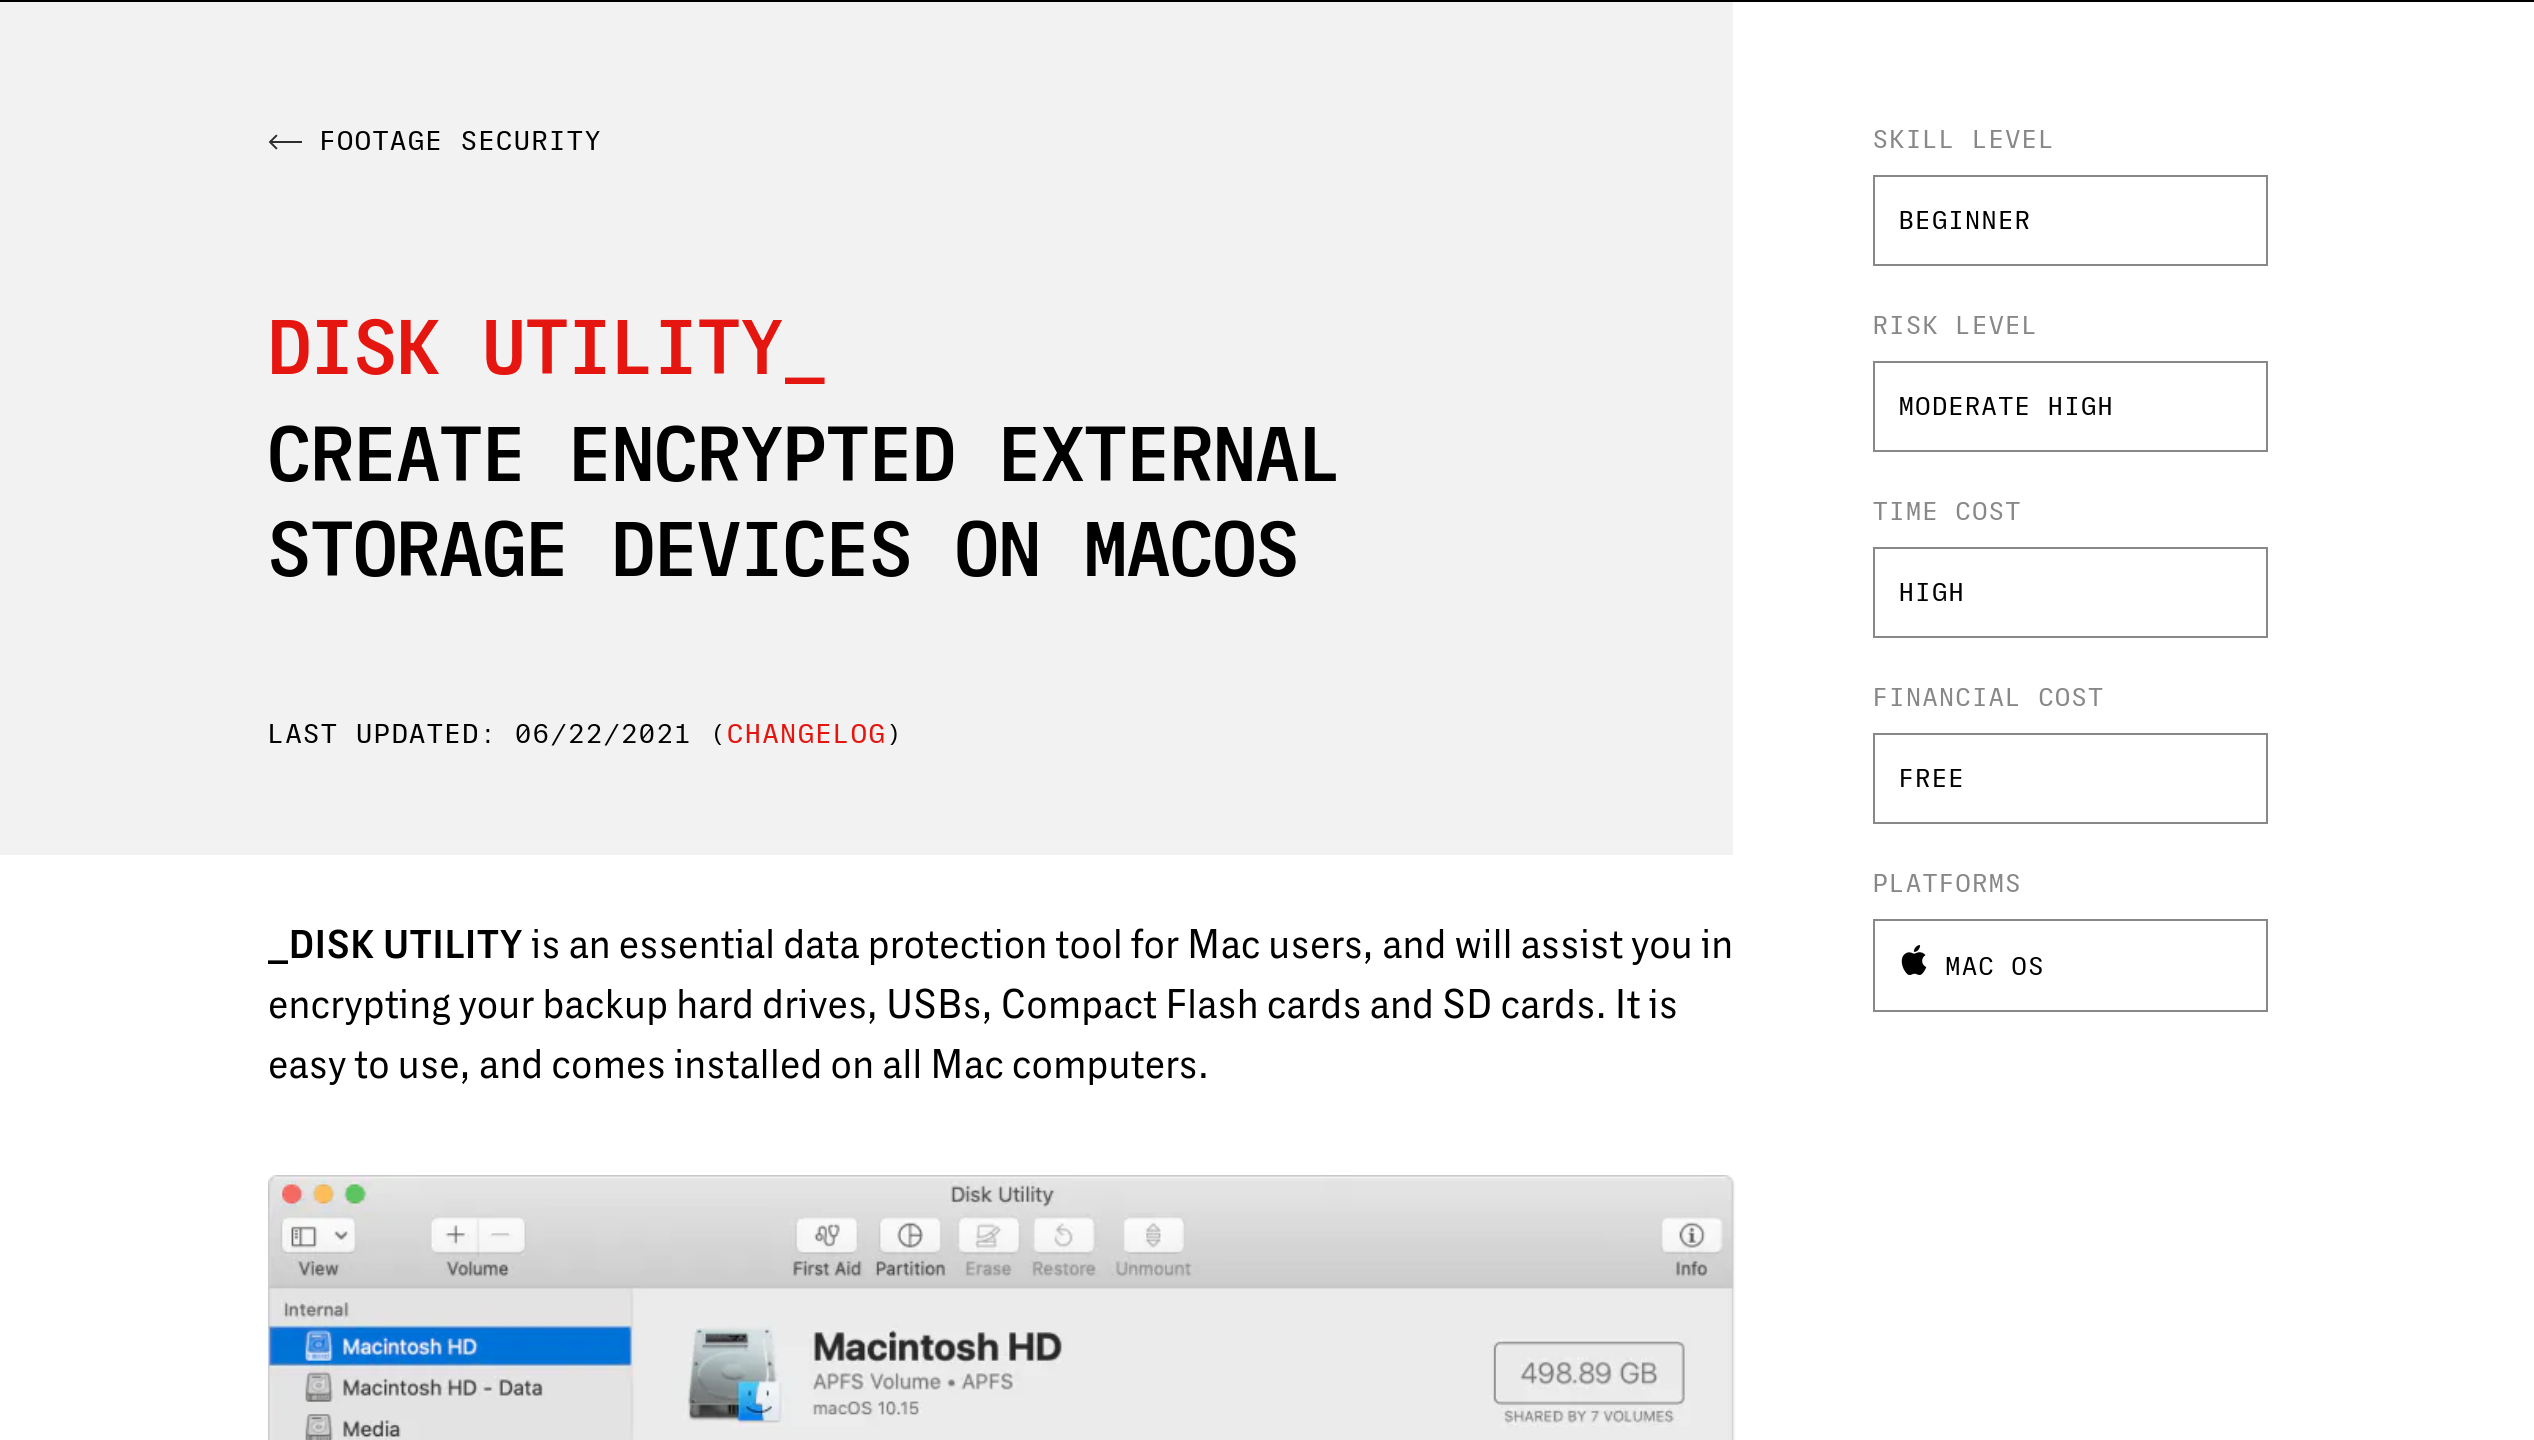 Digital Security for Filmmakers platform resource page on encrypting external storage devices with Disk Utility